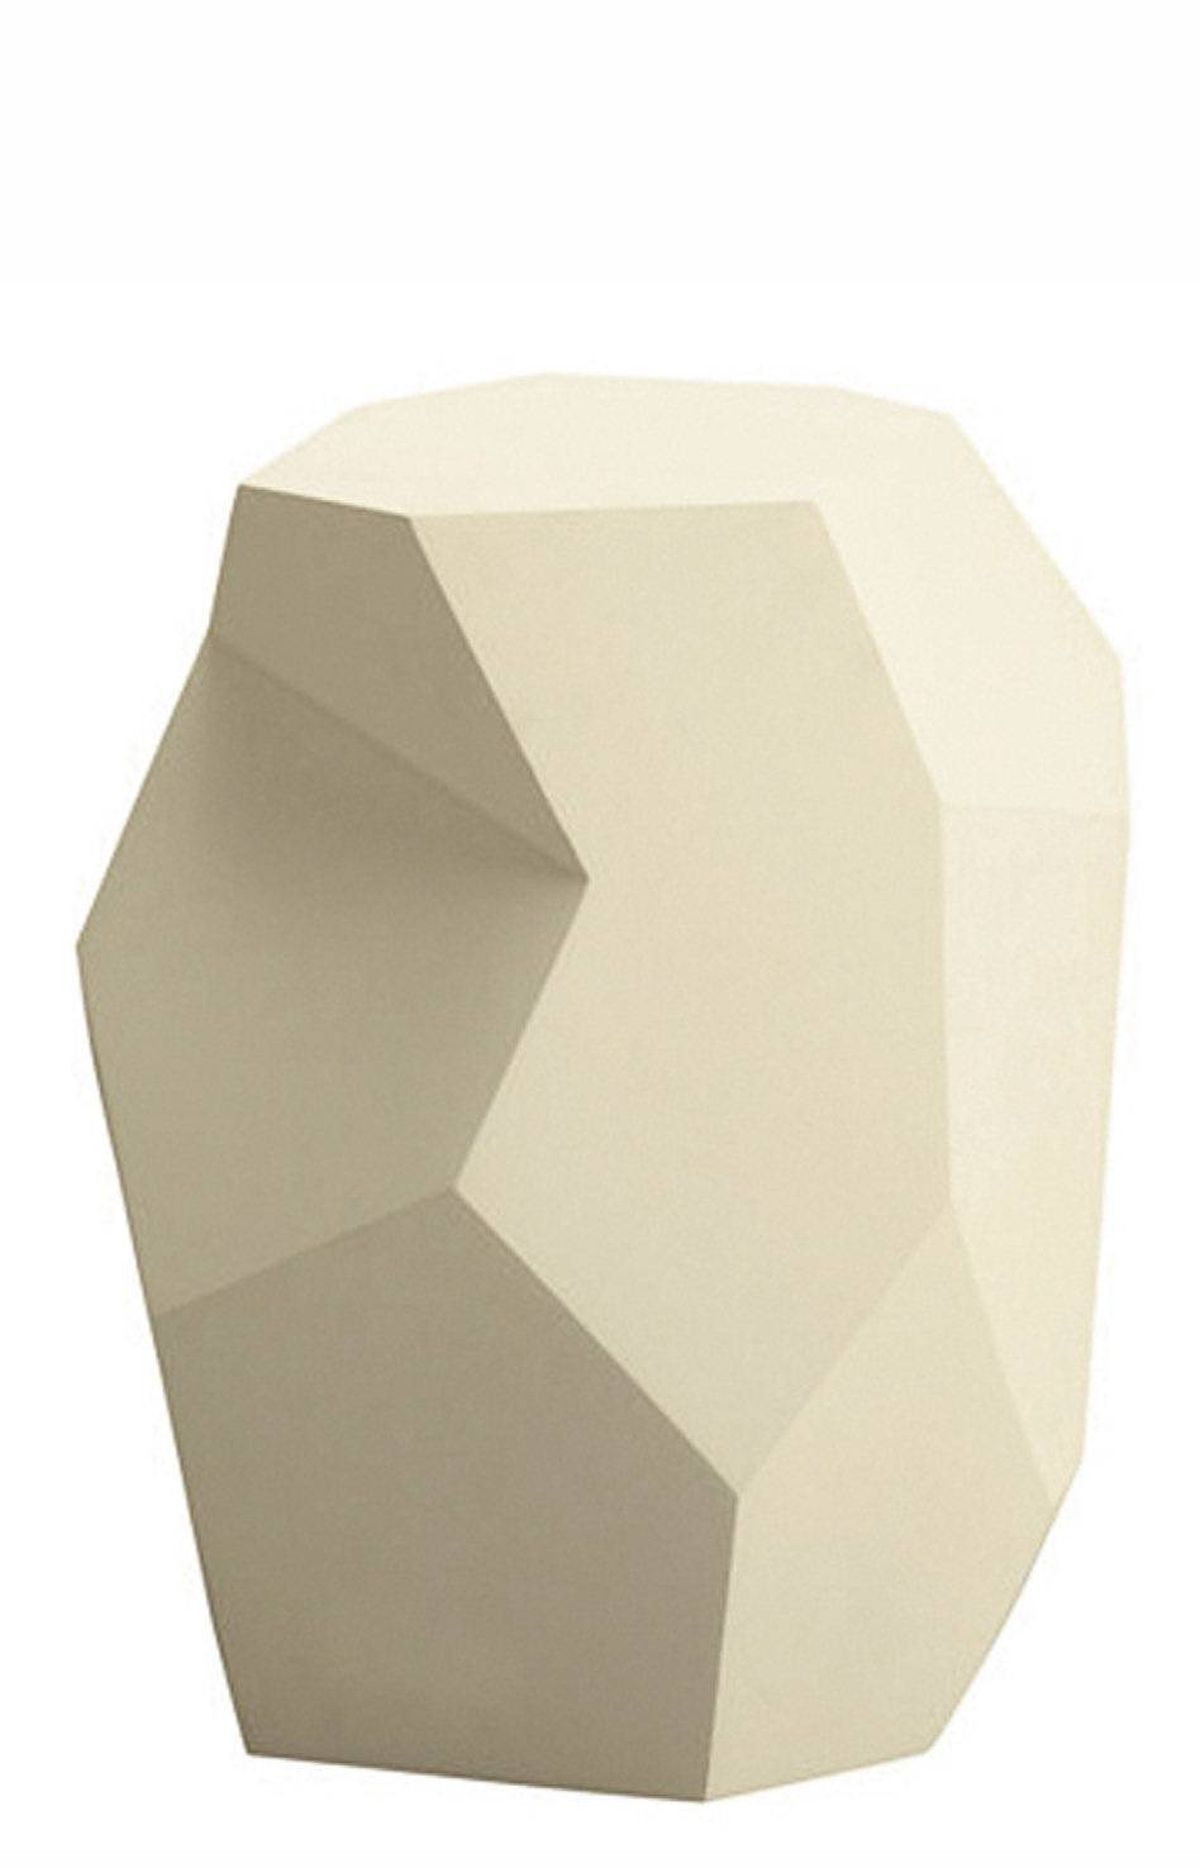 Barbara Barry Quarry Accent Table in Matte Pearl Gesso, $1,395 at studio b (www.studiobhome.com).